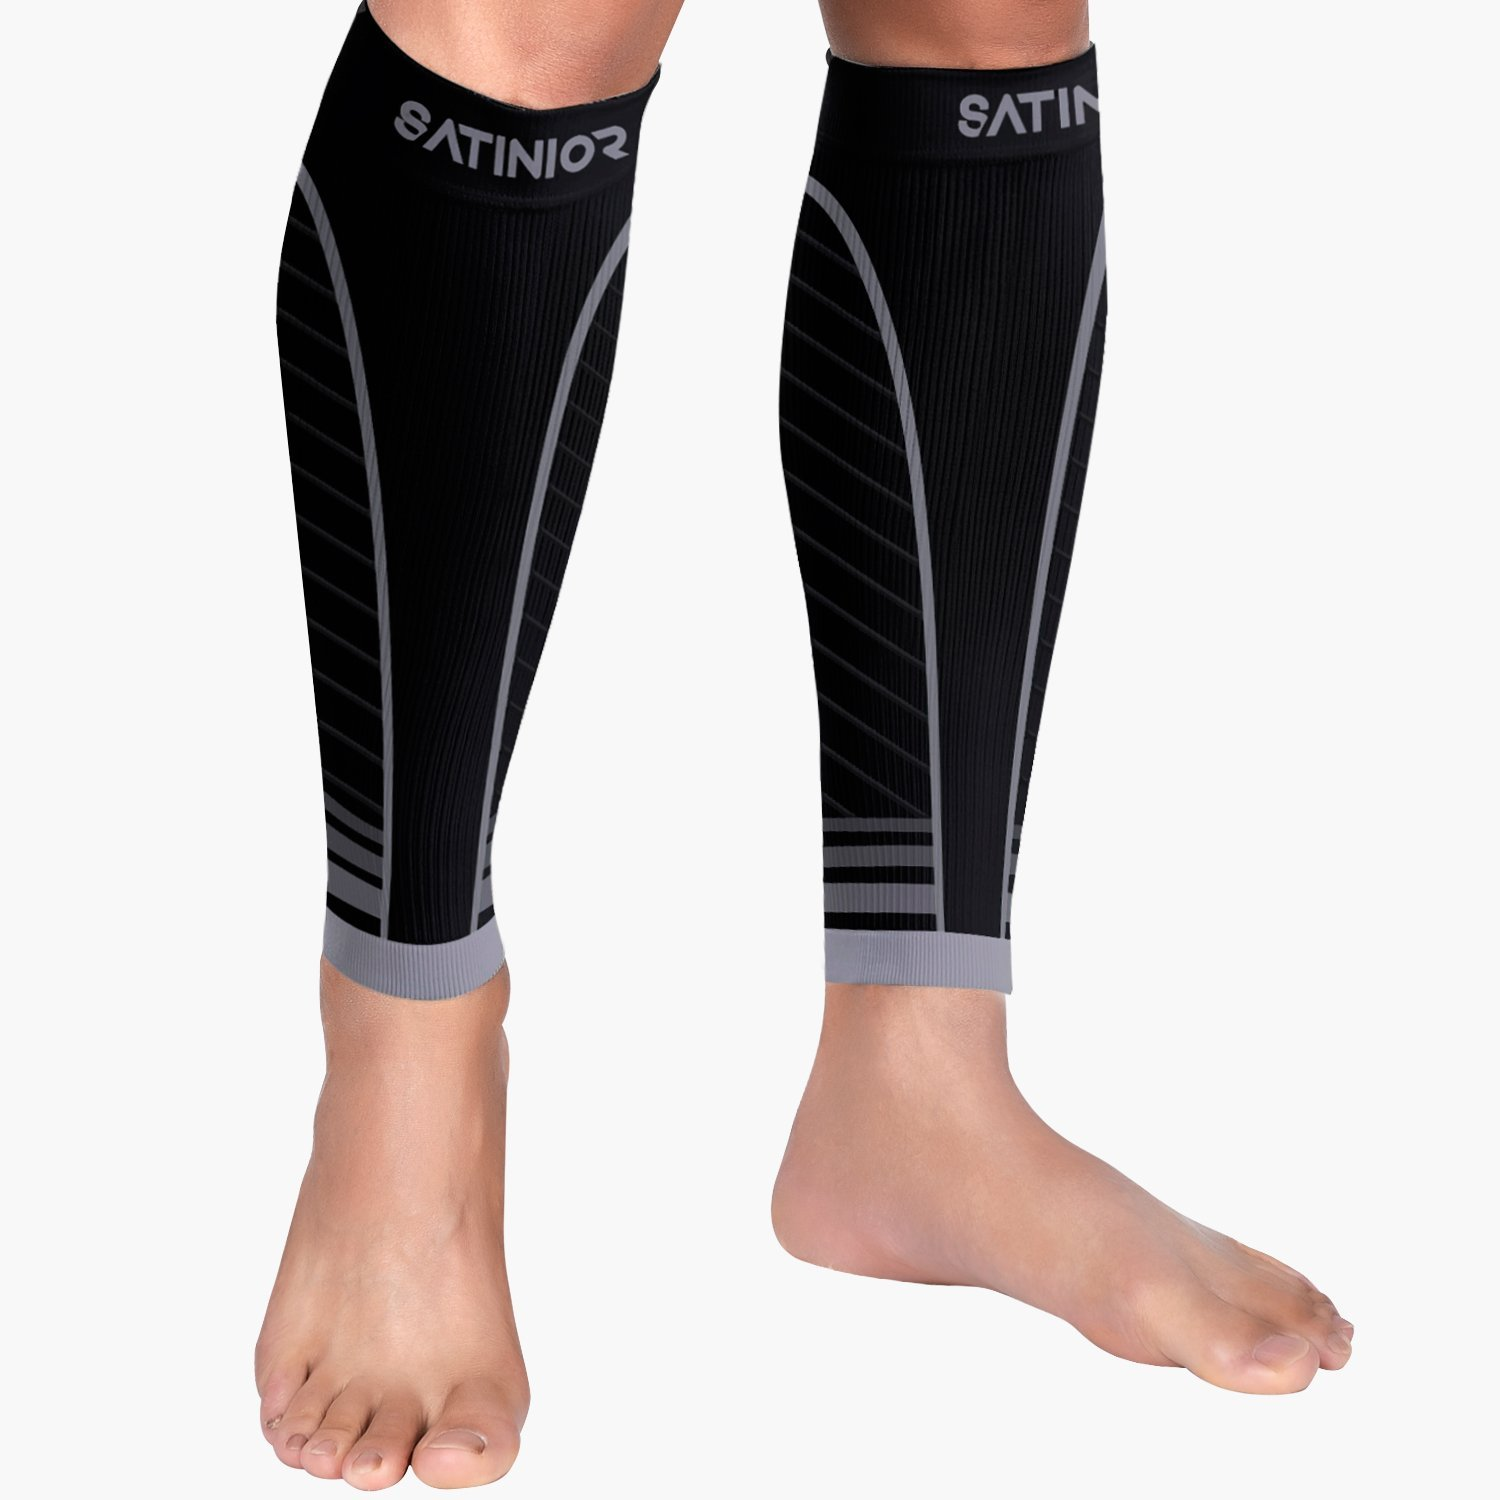 30f1a2f557 Get Quotations · Satinior 1 Pair Calf Compression Sleeves Men Women Leg  Support Socks, Runners Shin Guard Sleeves